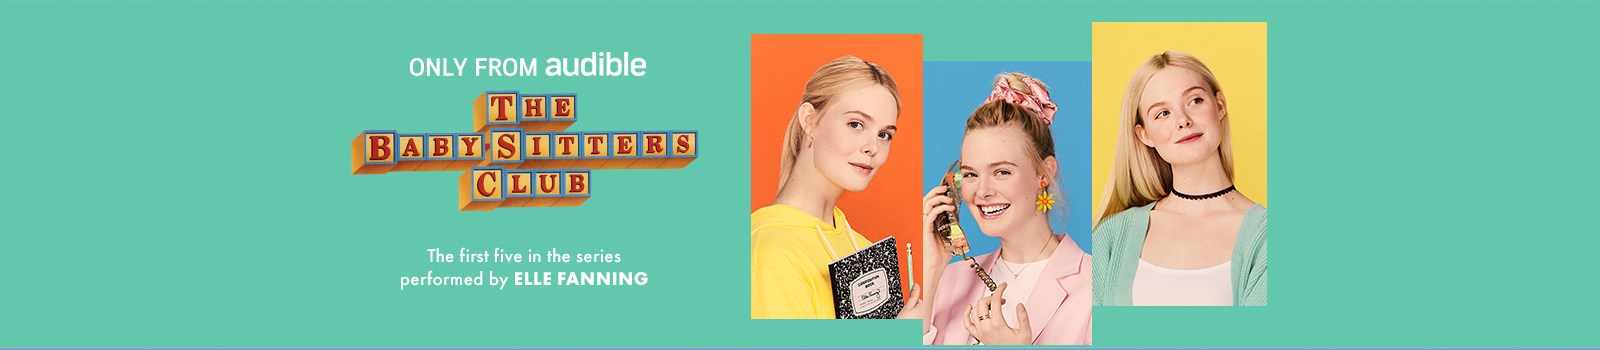 The Baby-Sitters Club. Only from Audible. The first five in the series performed by Elle Fanning.